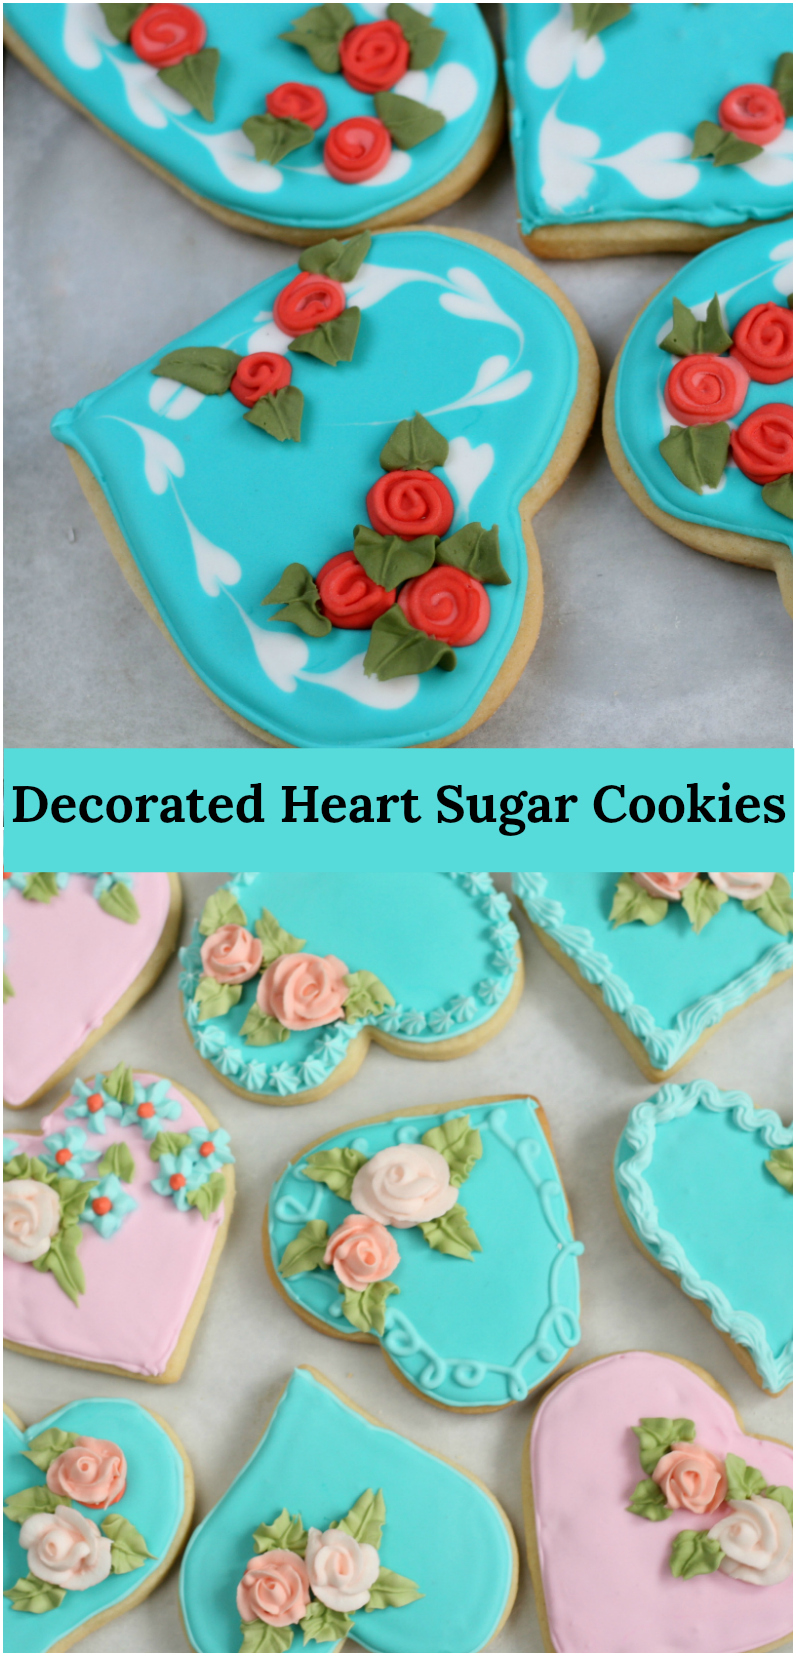 Are you looking for something homemade for the kids to bring to school for Valentine's Day? Then these beautiful Decorated Heart Shaped Sugar Cookies are perfect for you! #Valentinesday #sugarcookies #homemade #recipes